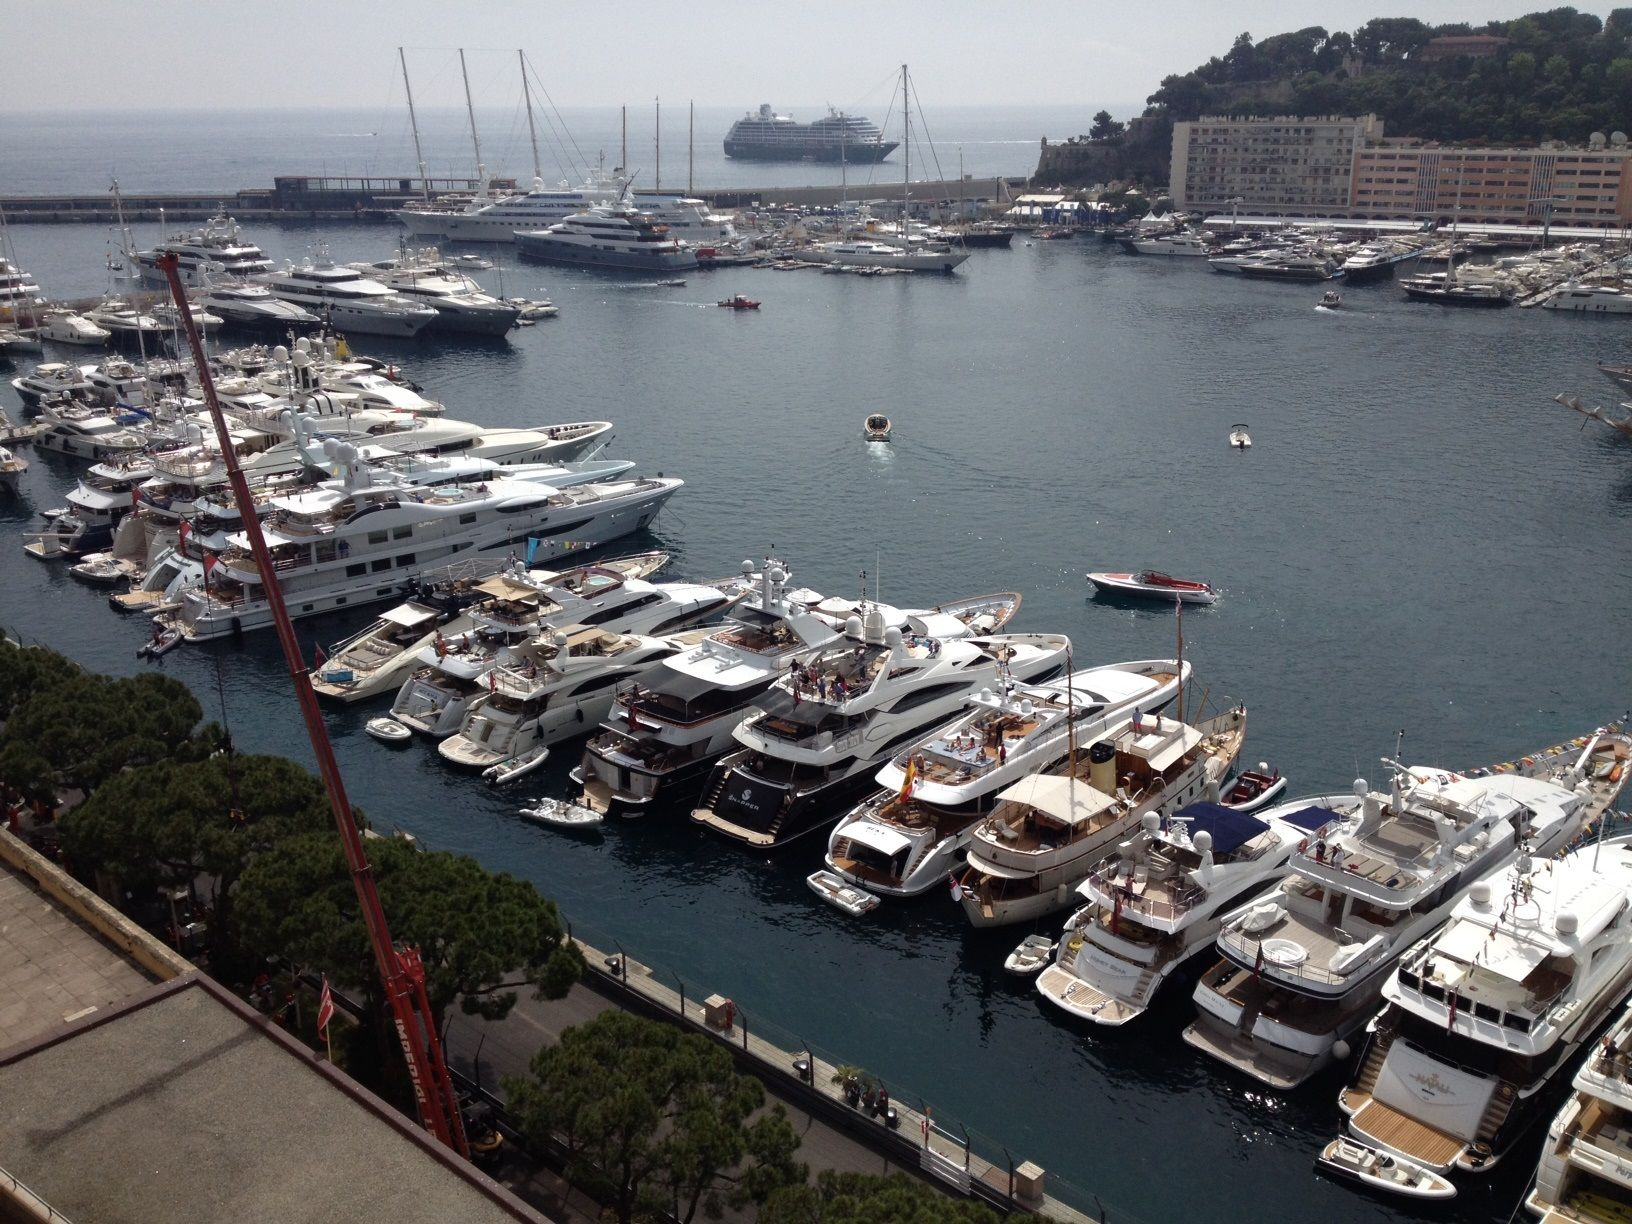 monaco grand prix 2014 coverage